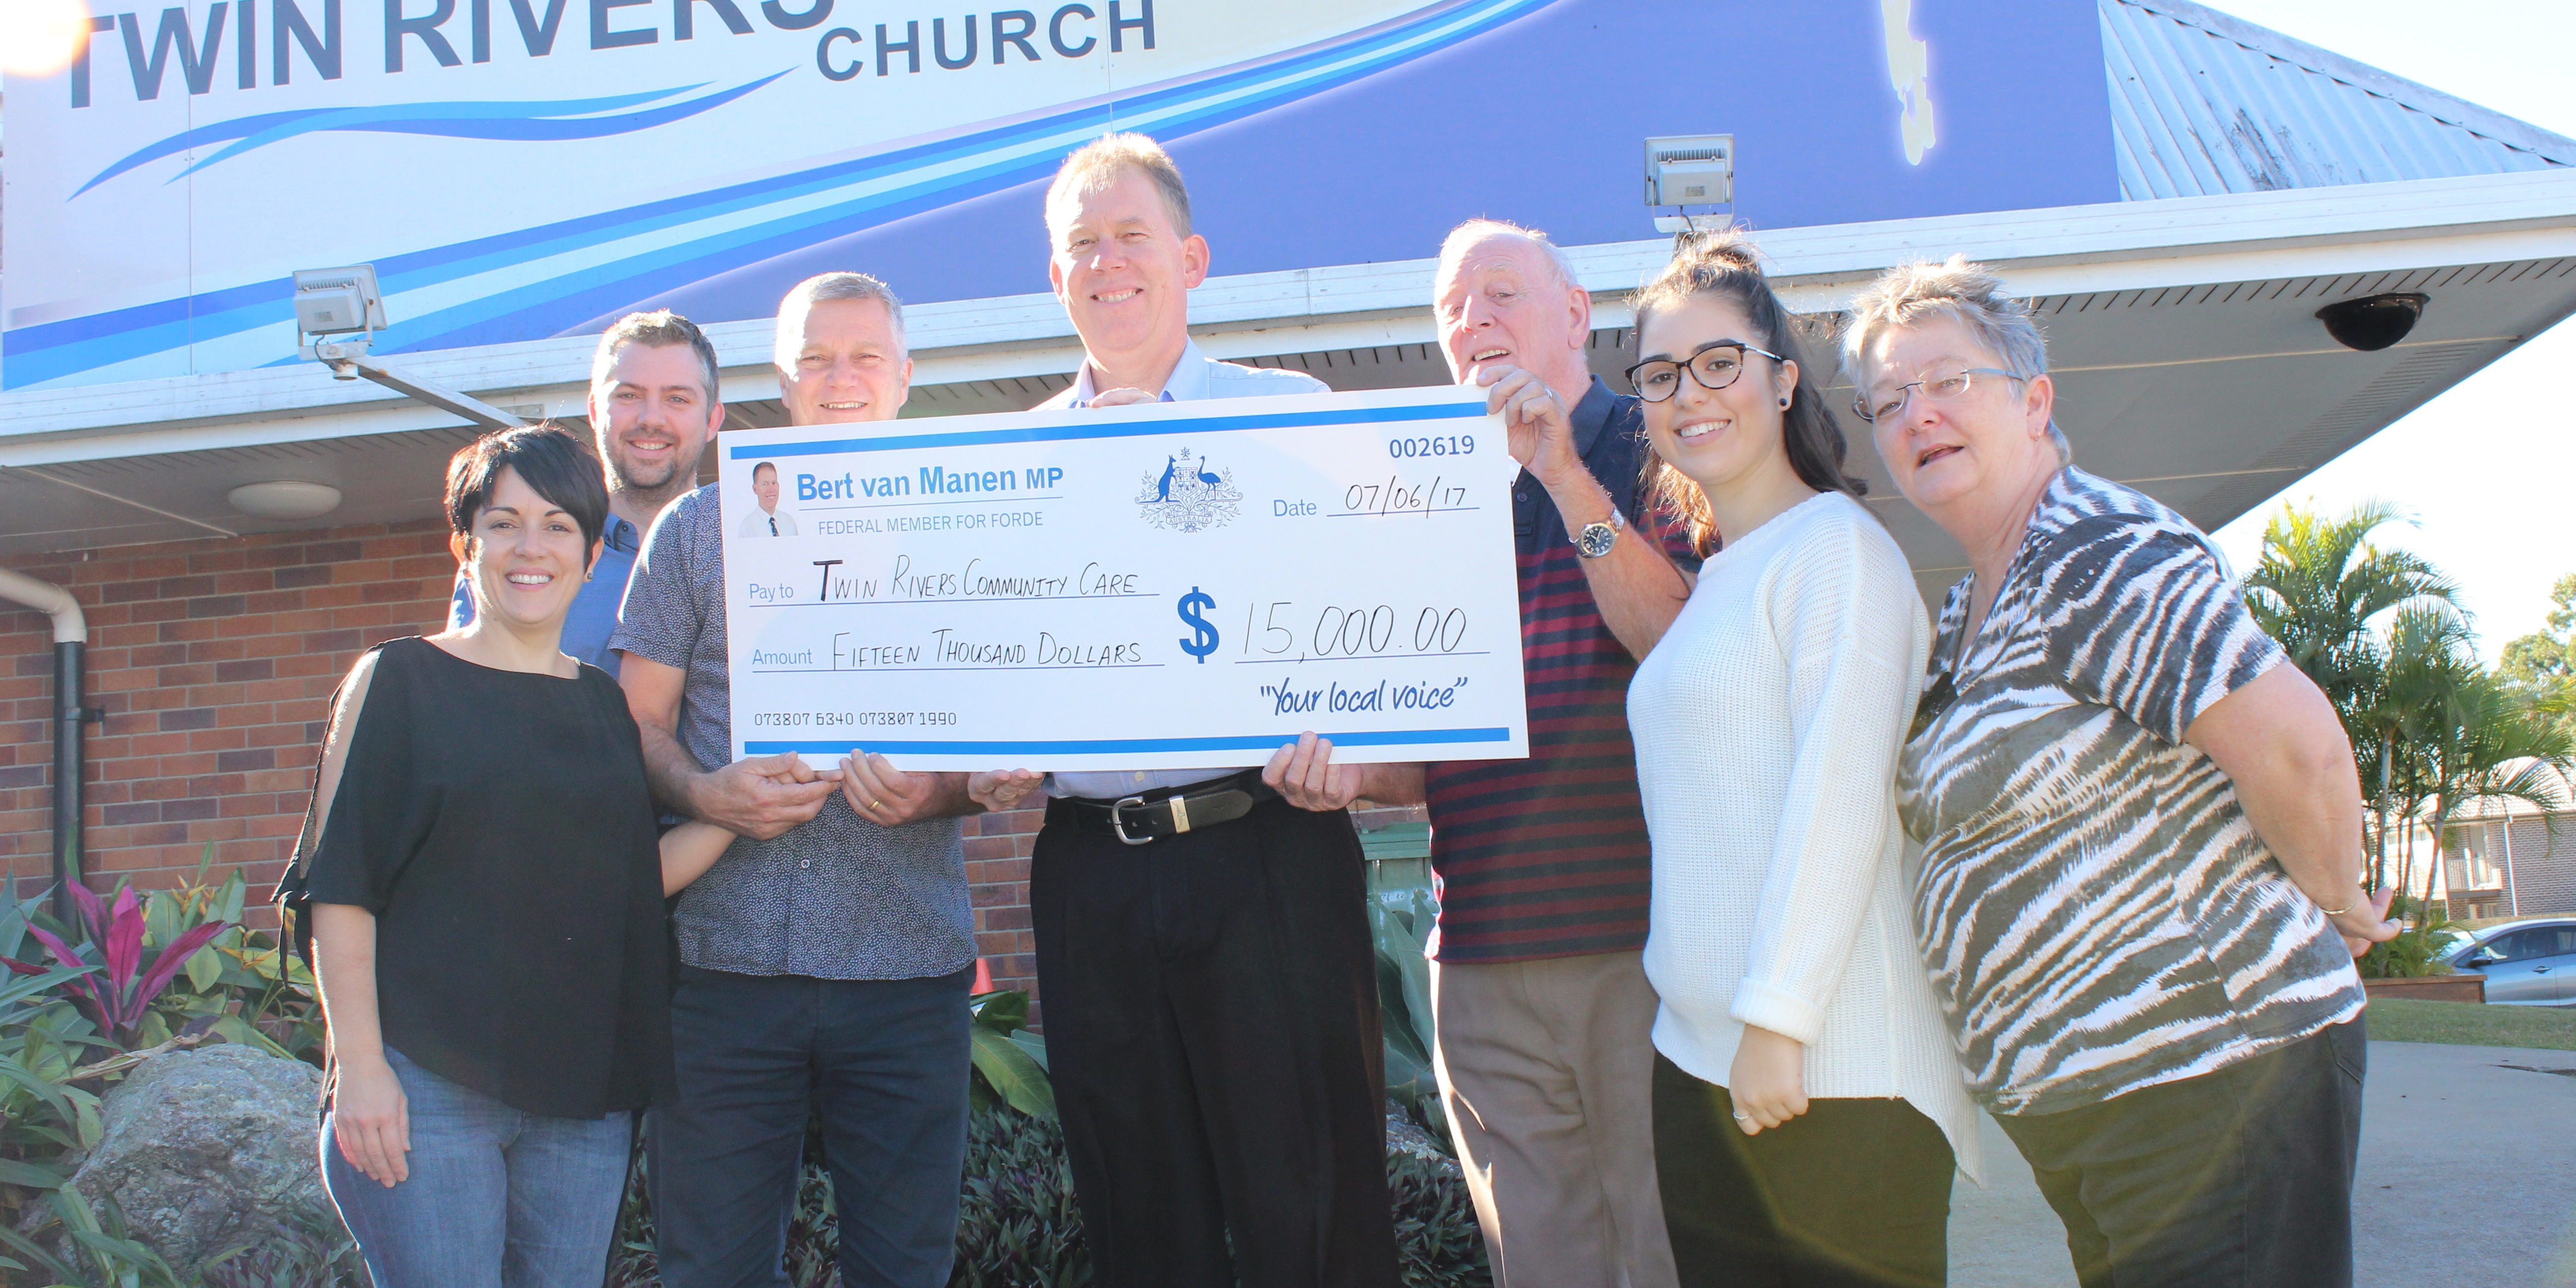 Twin Rivers Community Care Gets 15 000 Funding Boost